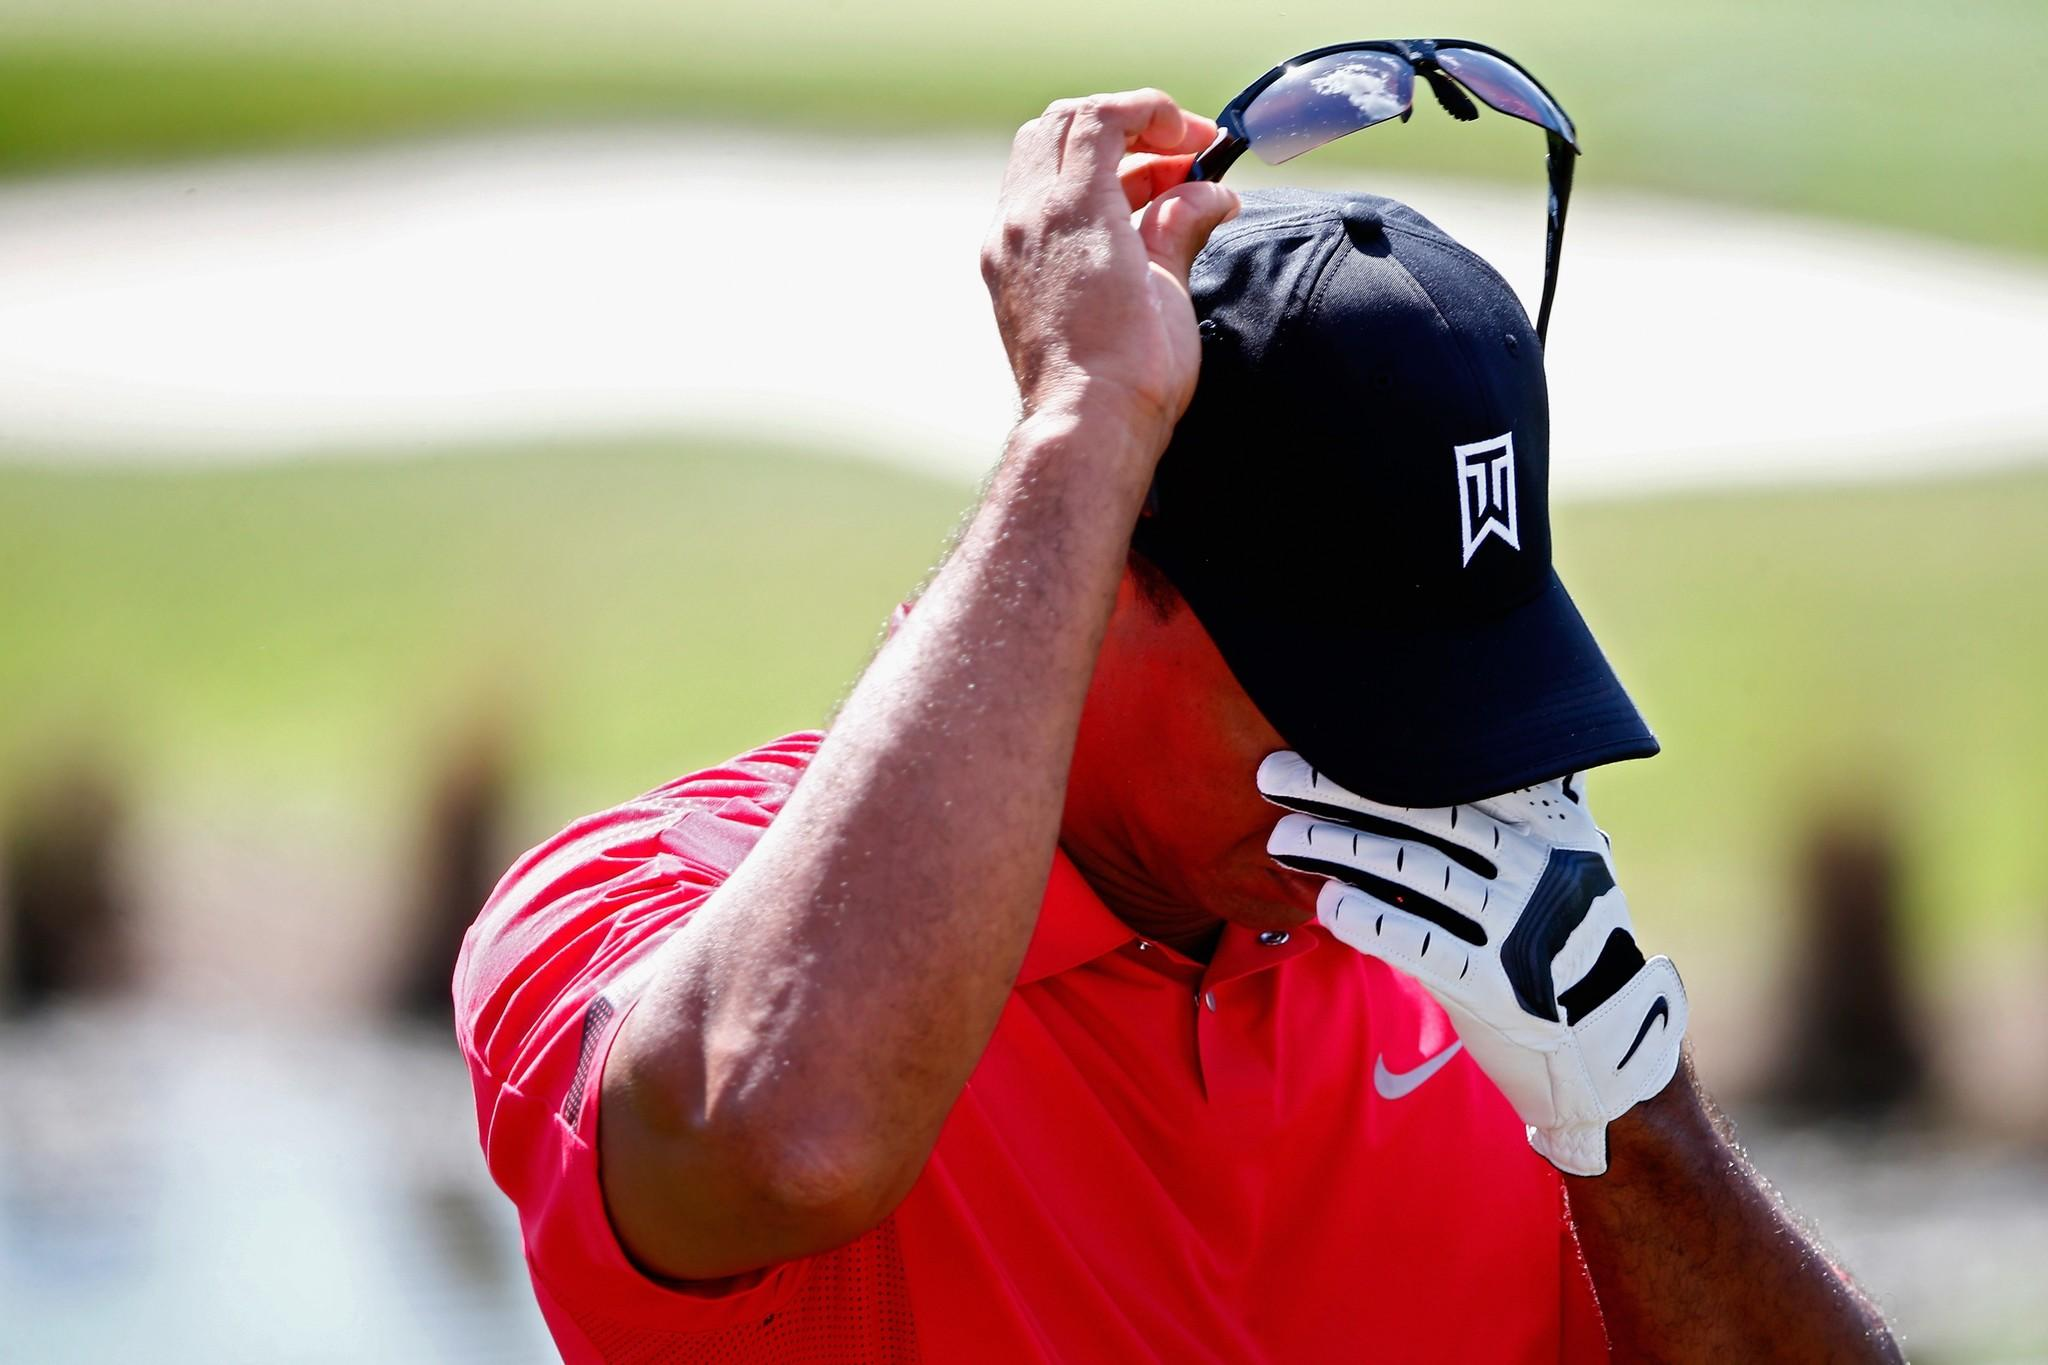 Tiger Woods wipes his face during the final round of The Honda Classic at PGA National Resort and Spa.